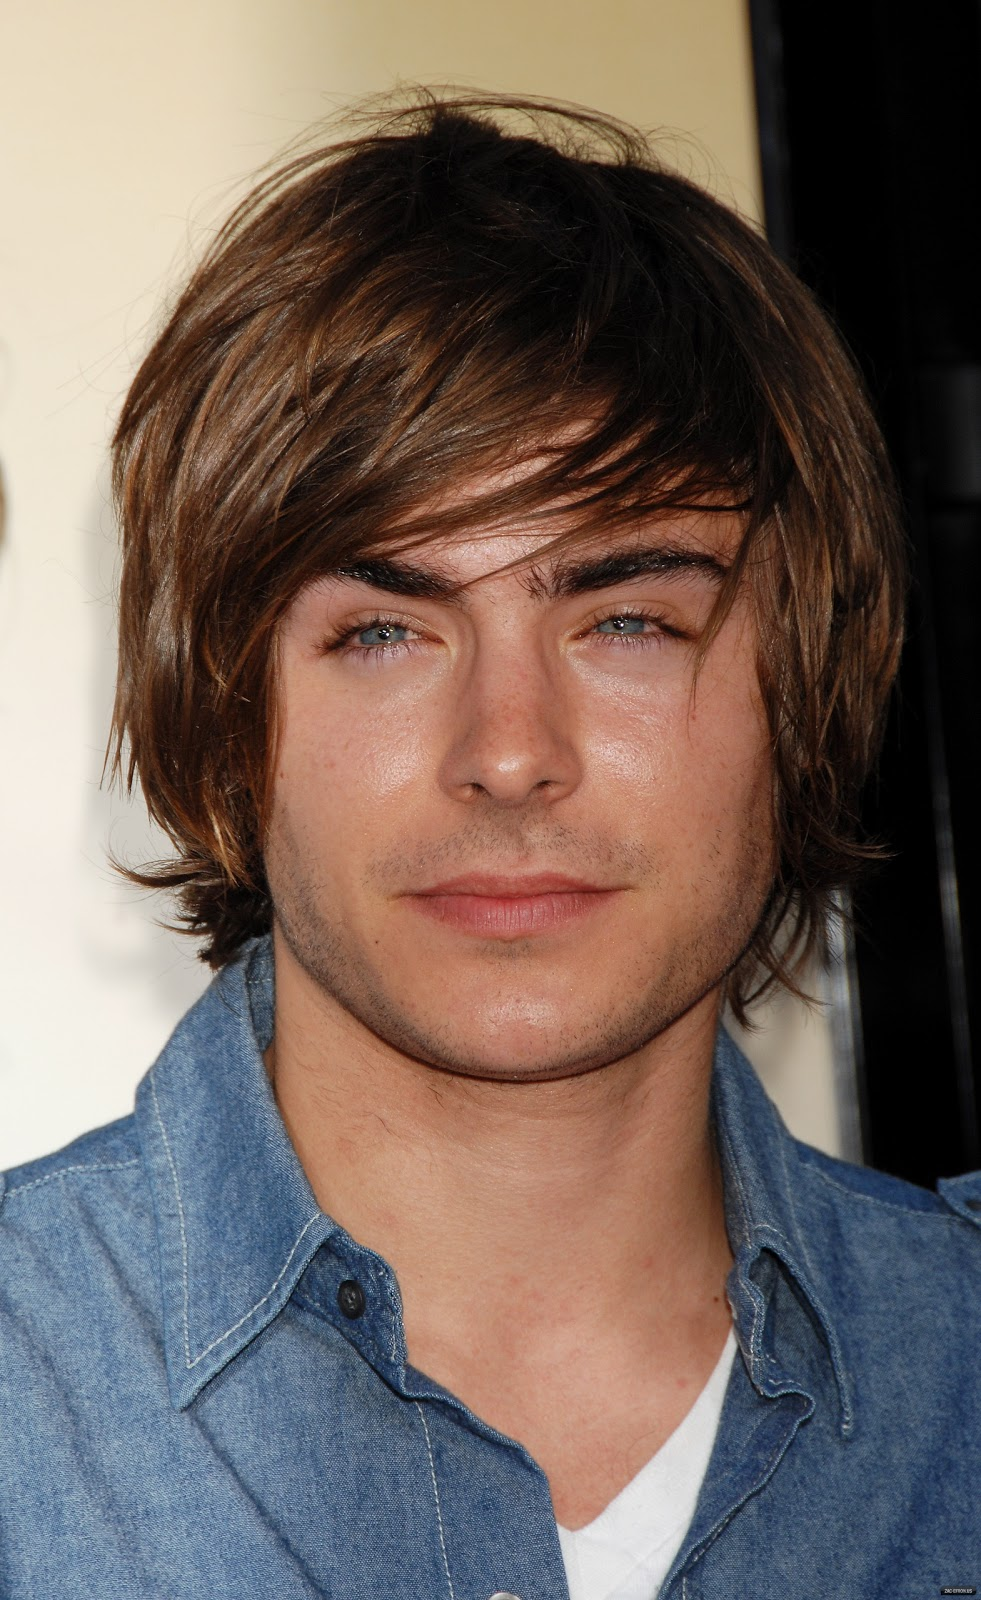 Zac efron dating anyone 2013